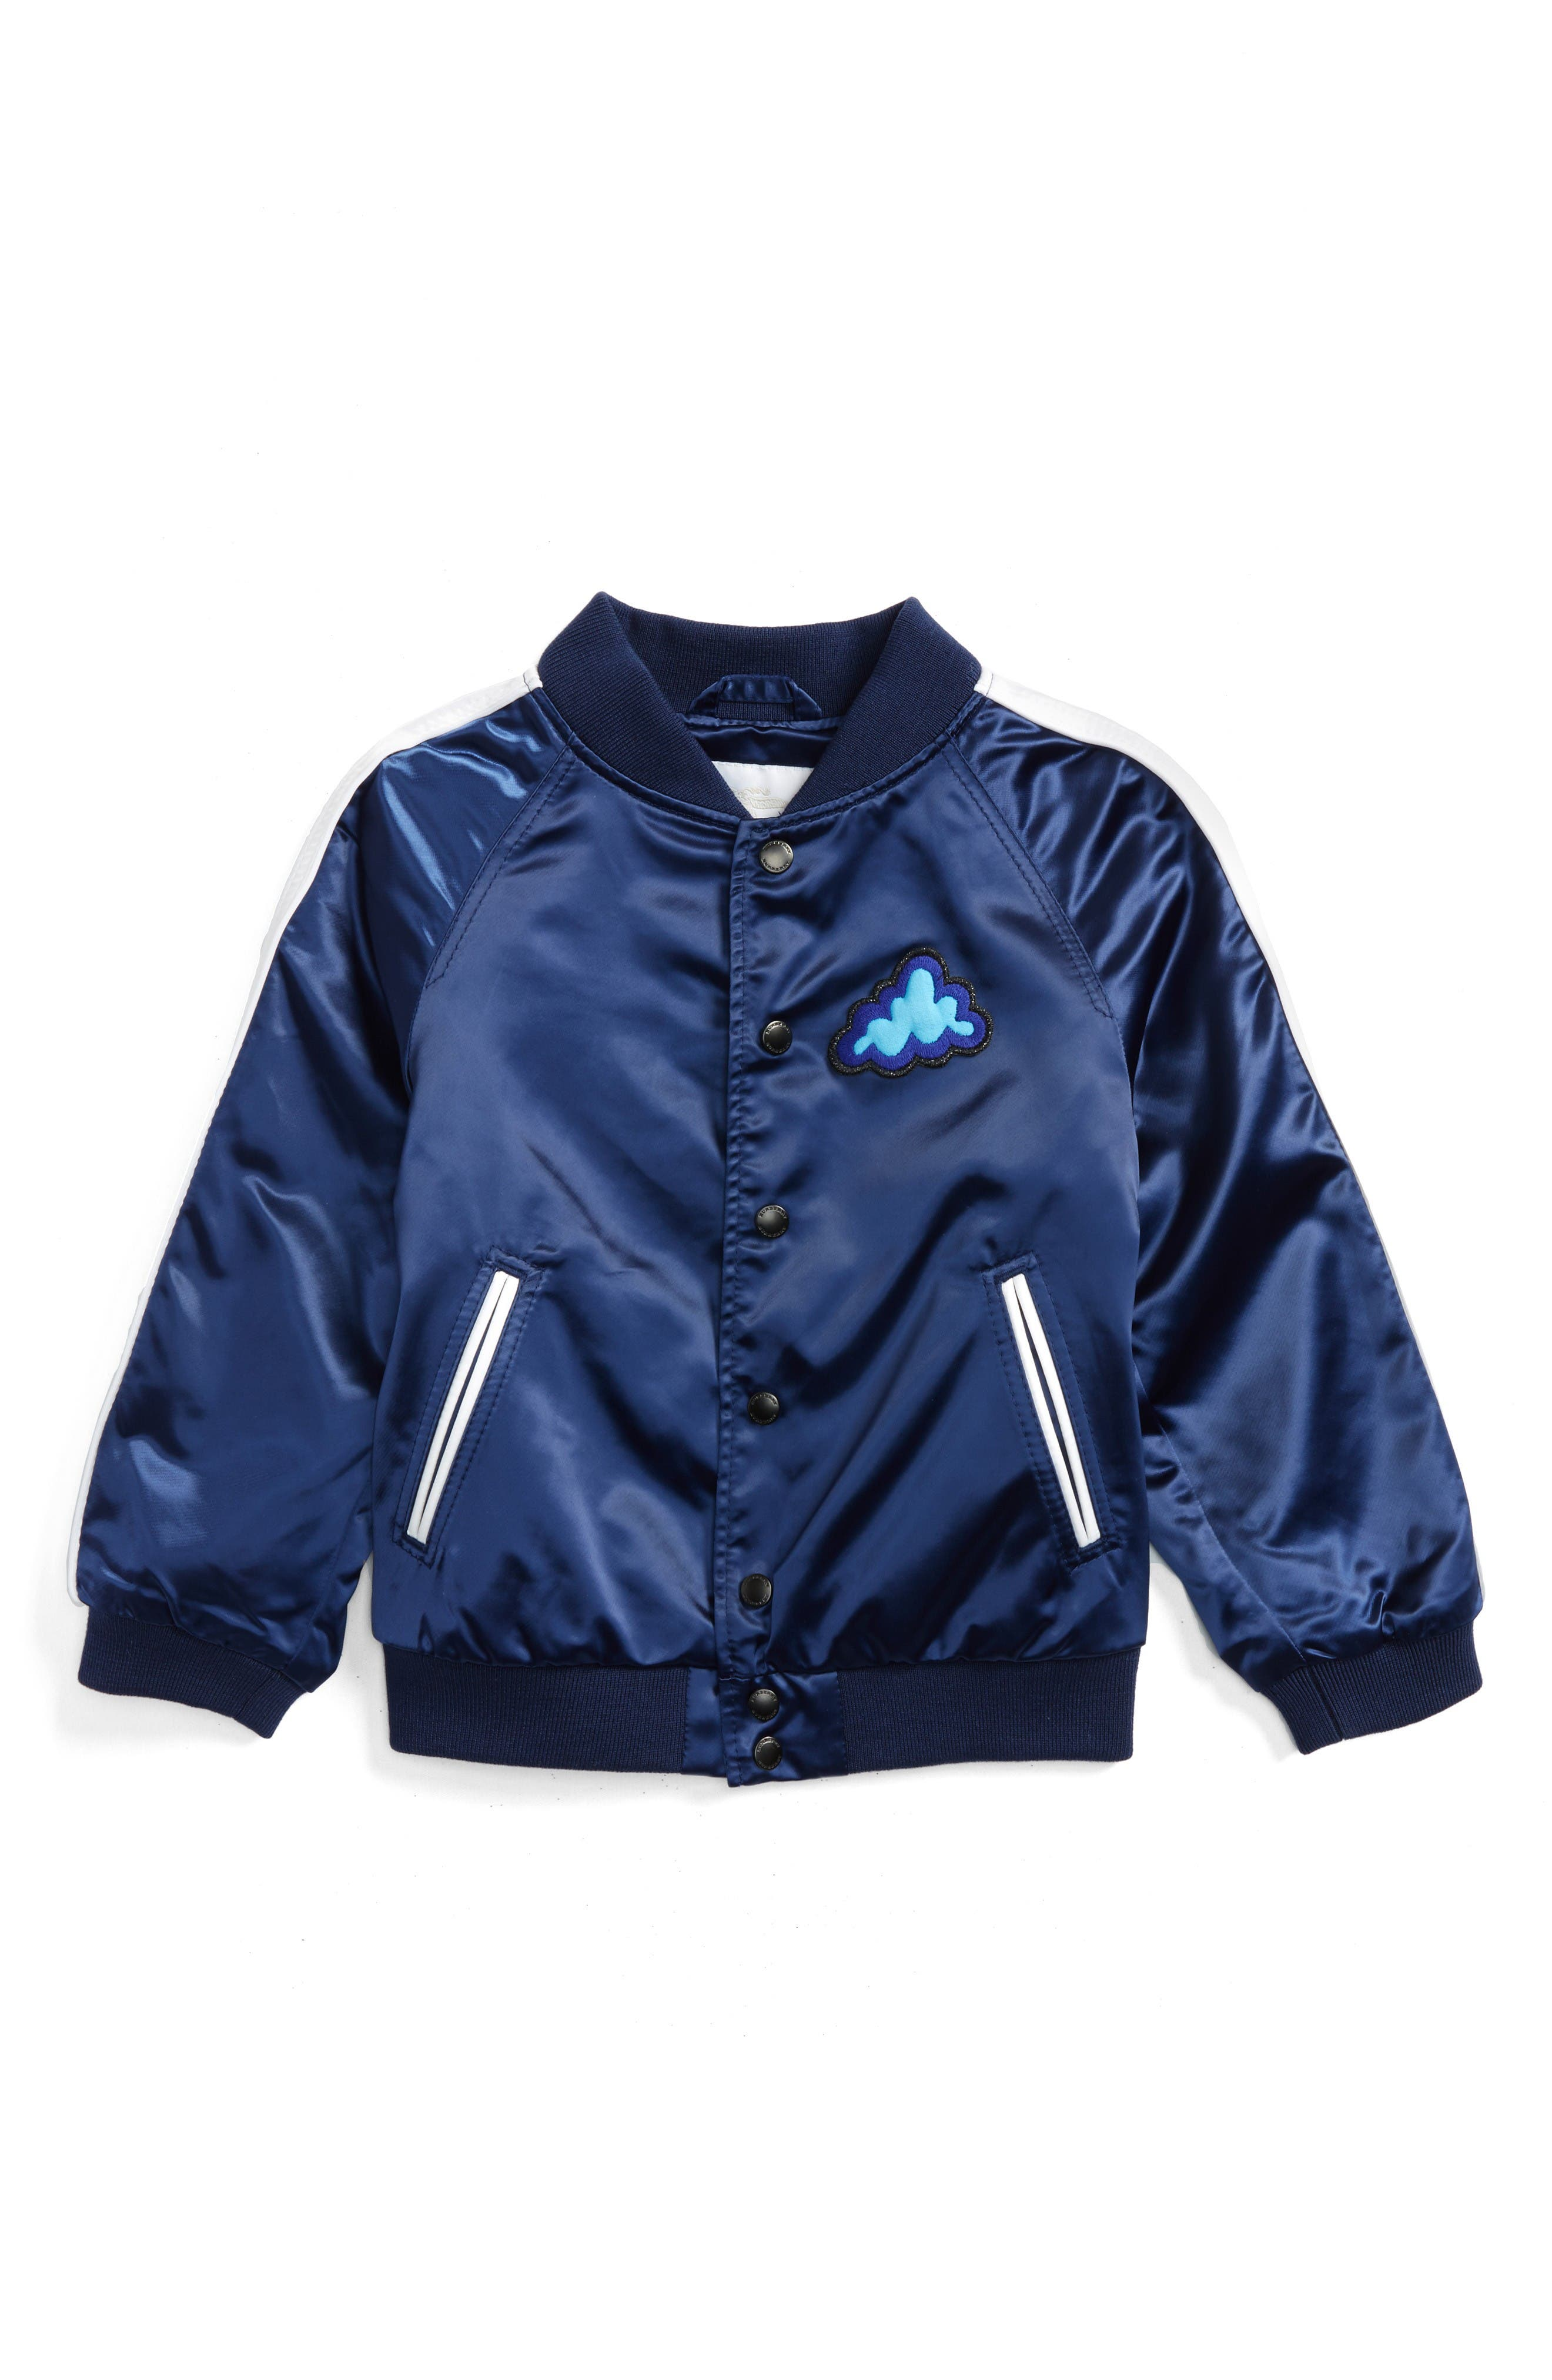 BURBERRY Lidington Weather Appliqué Bomber Jacket